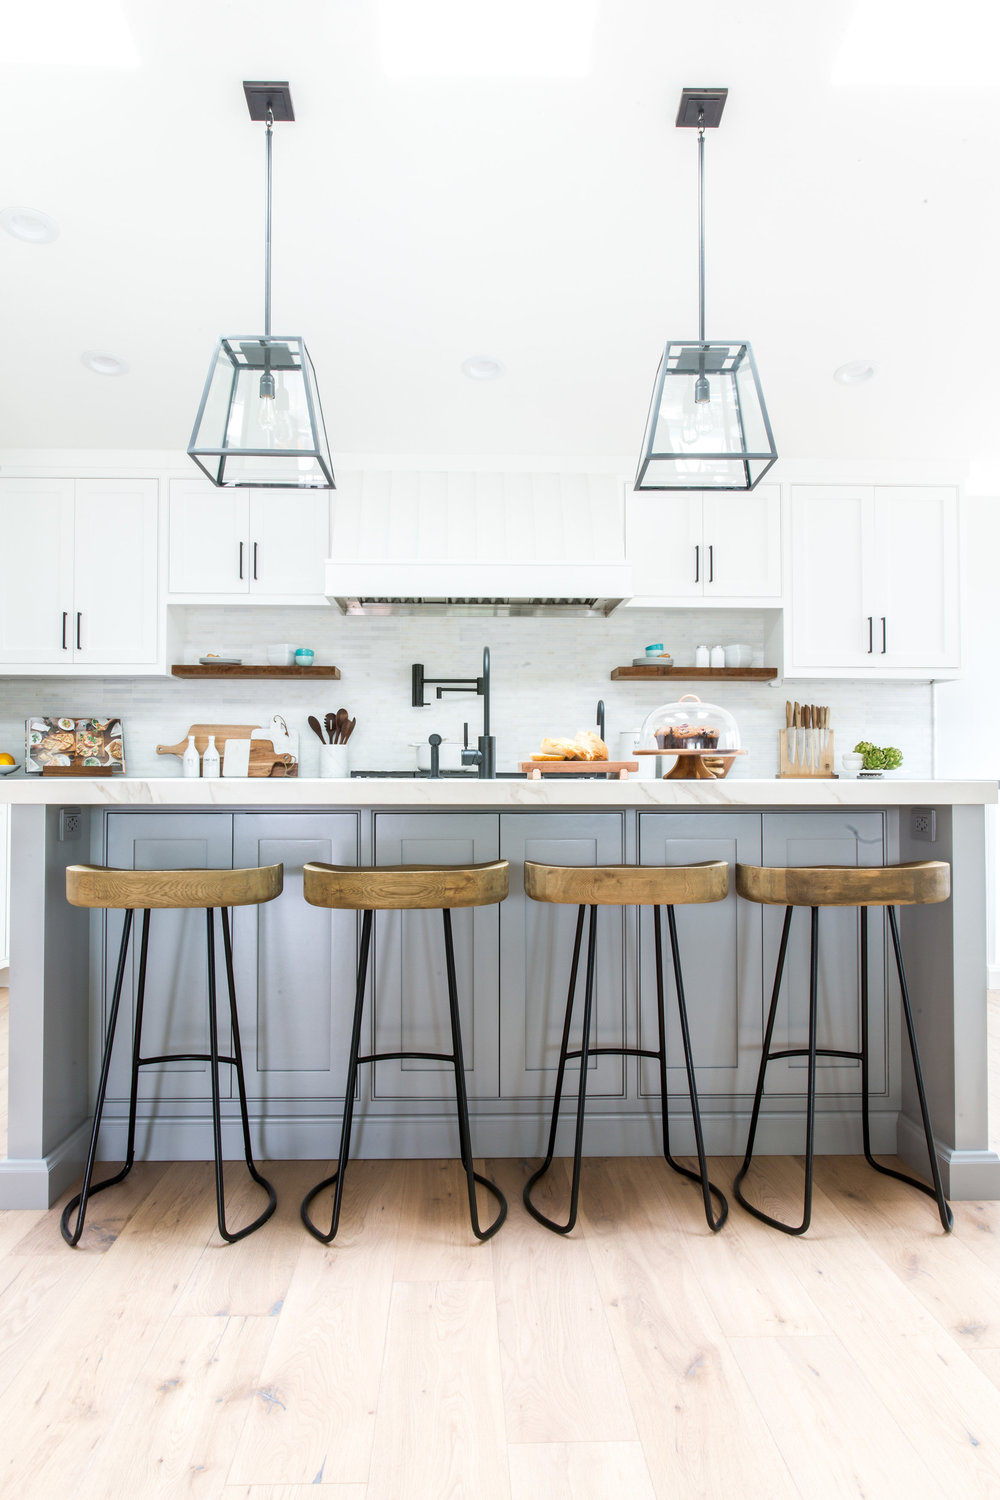 WHITE MARBLE COUNTERTOPS - Carrara, Calacatta or maybe even Pacific White Marble for an elegant and timeless Modern Farmhouse kitchen design.   Image by Lindye Galloway Interiors